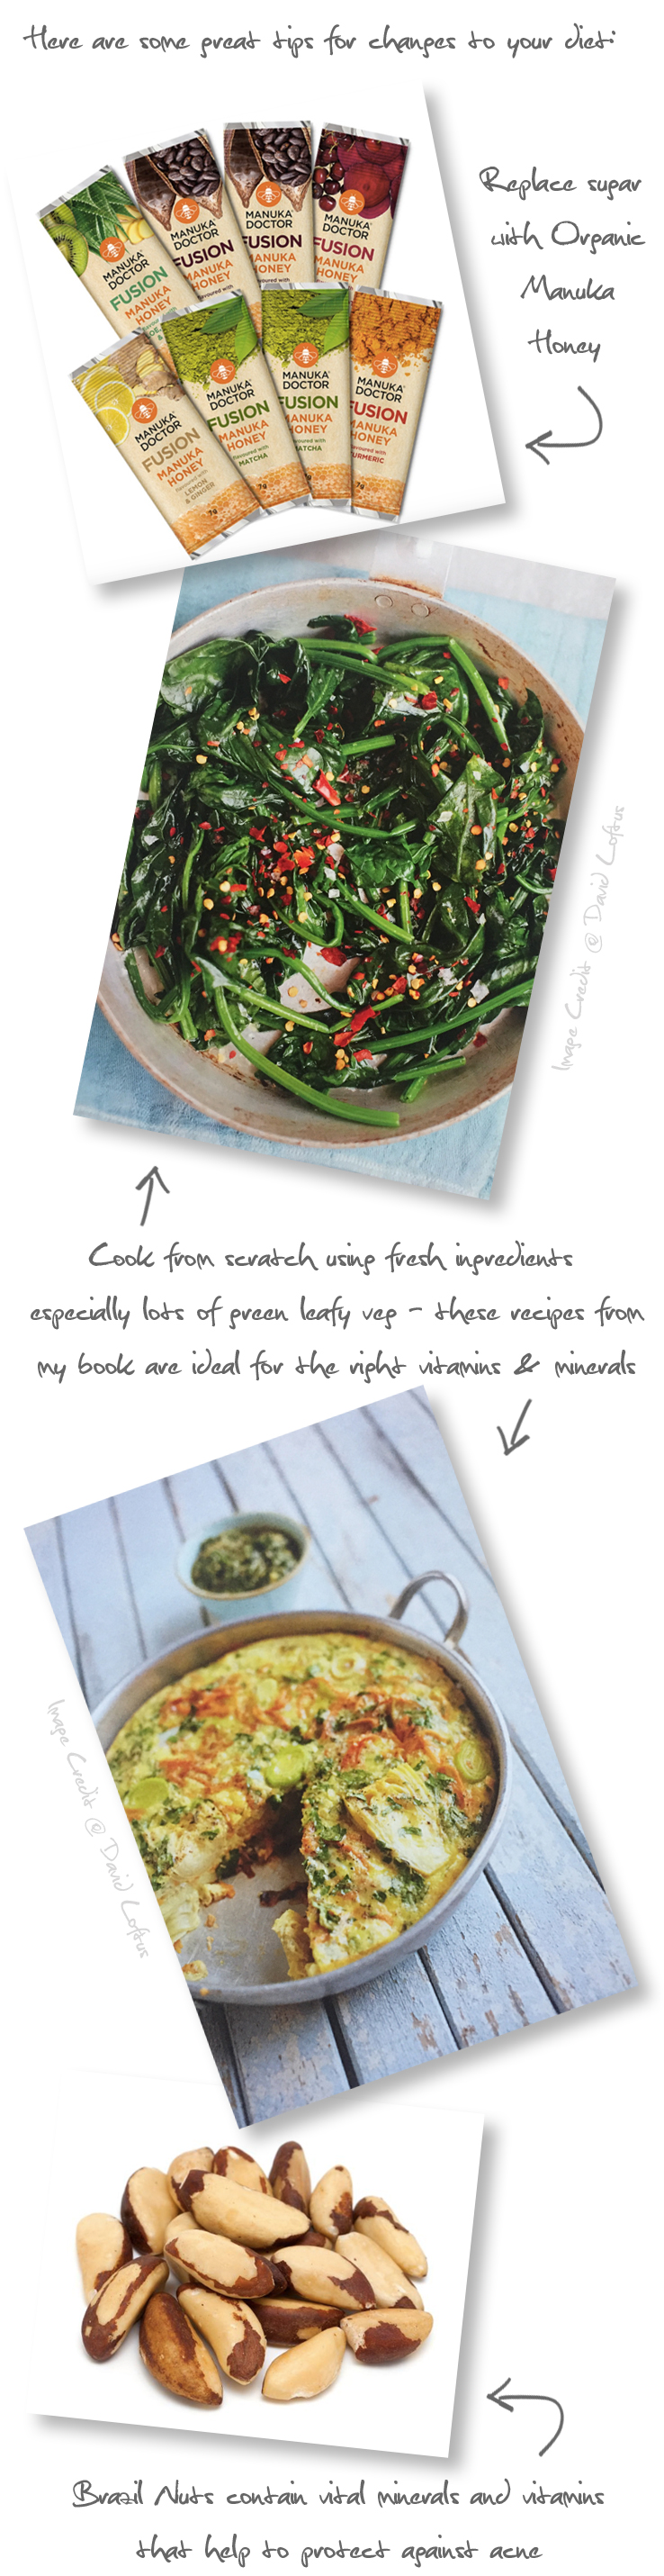 ACNE_Food Tips